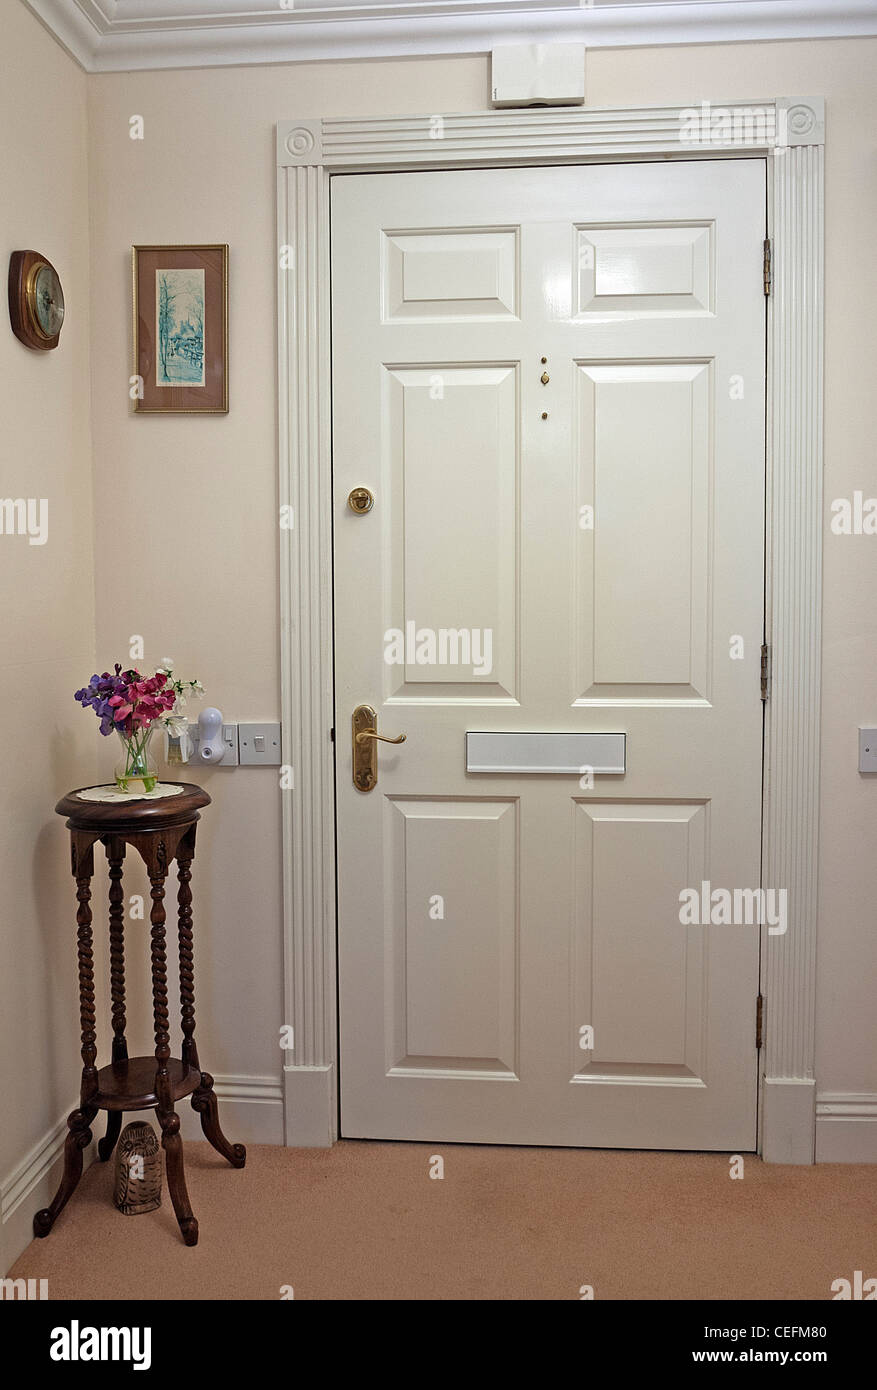 Apartment Entrance Door from inside a hallway with a side ...